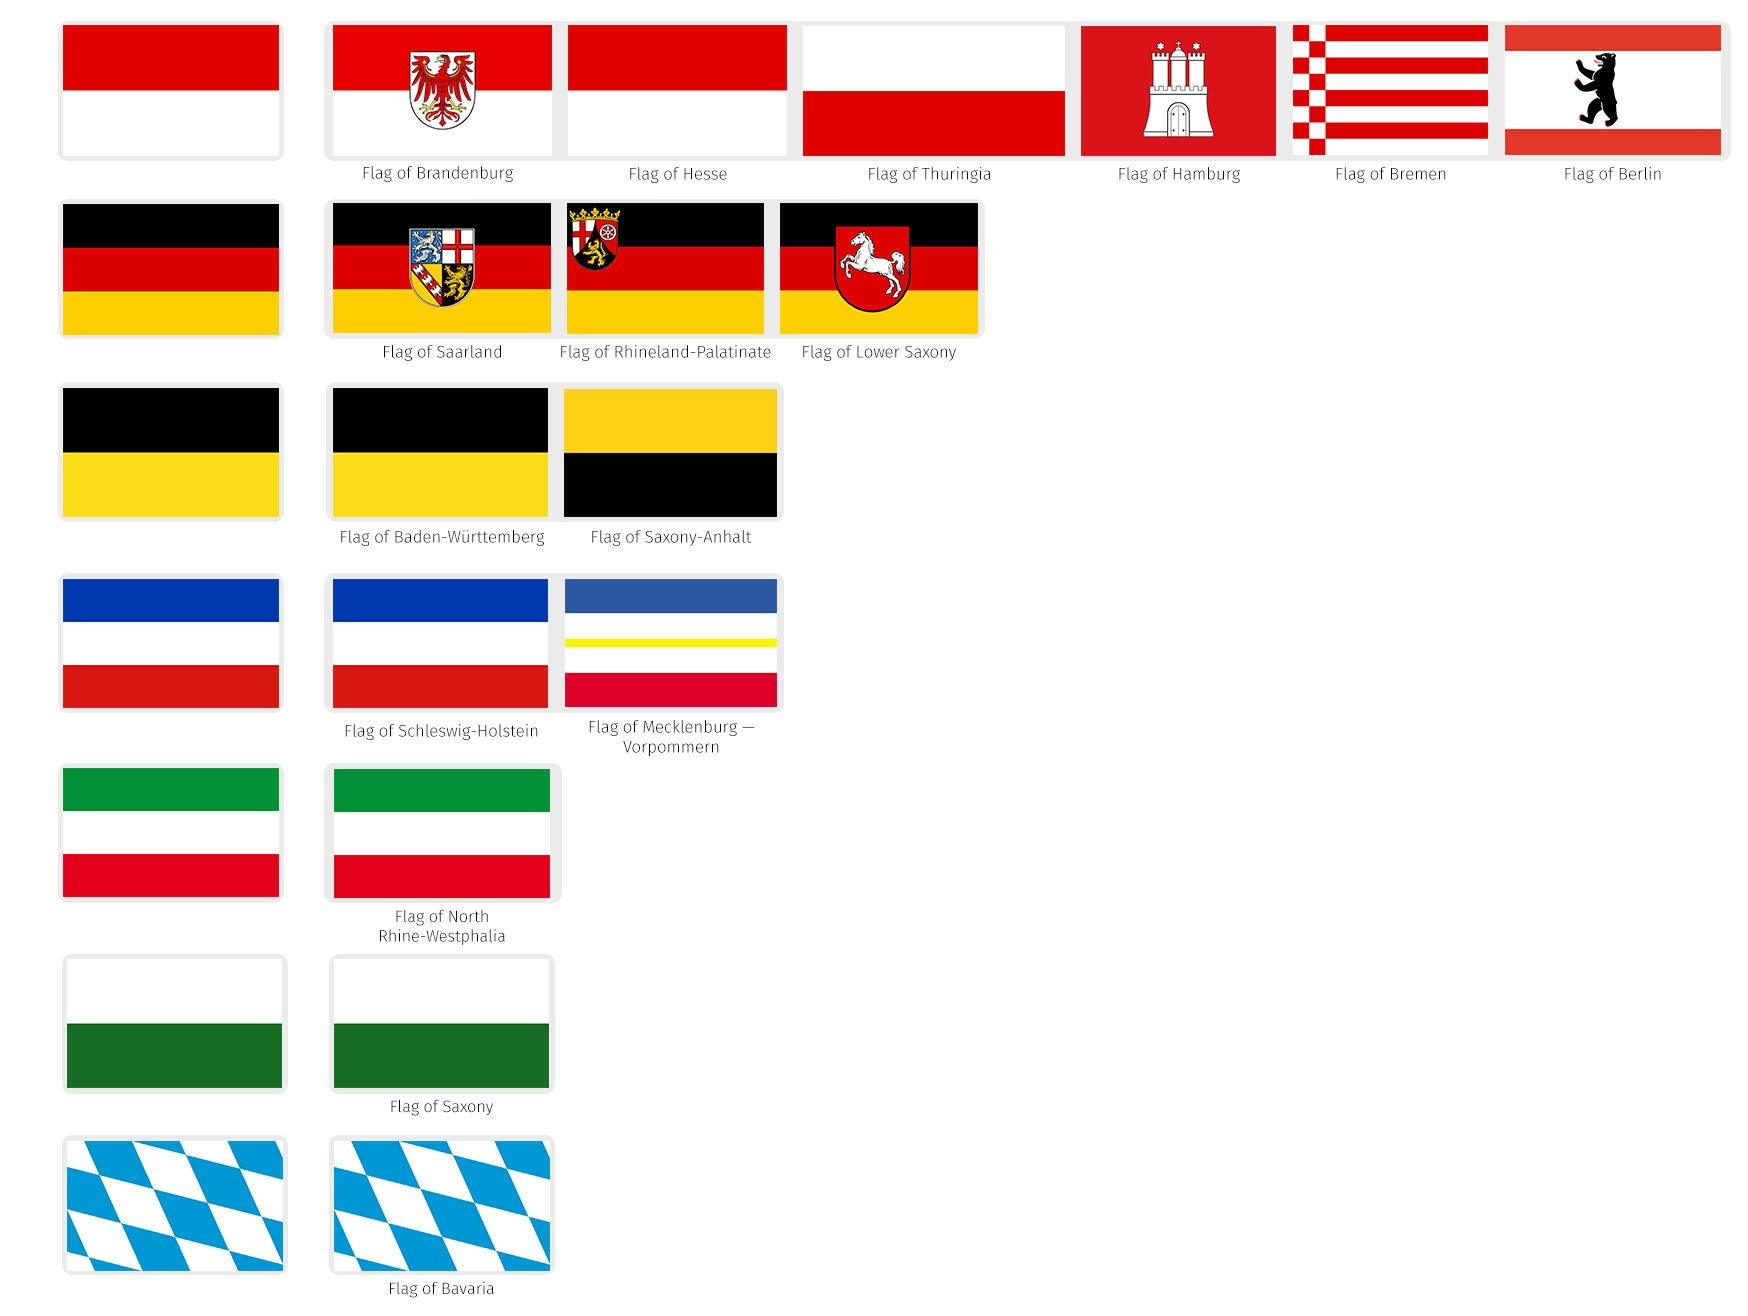 en55-heraldry-of-german-states_22